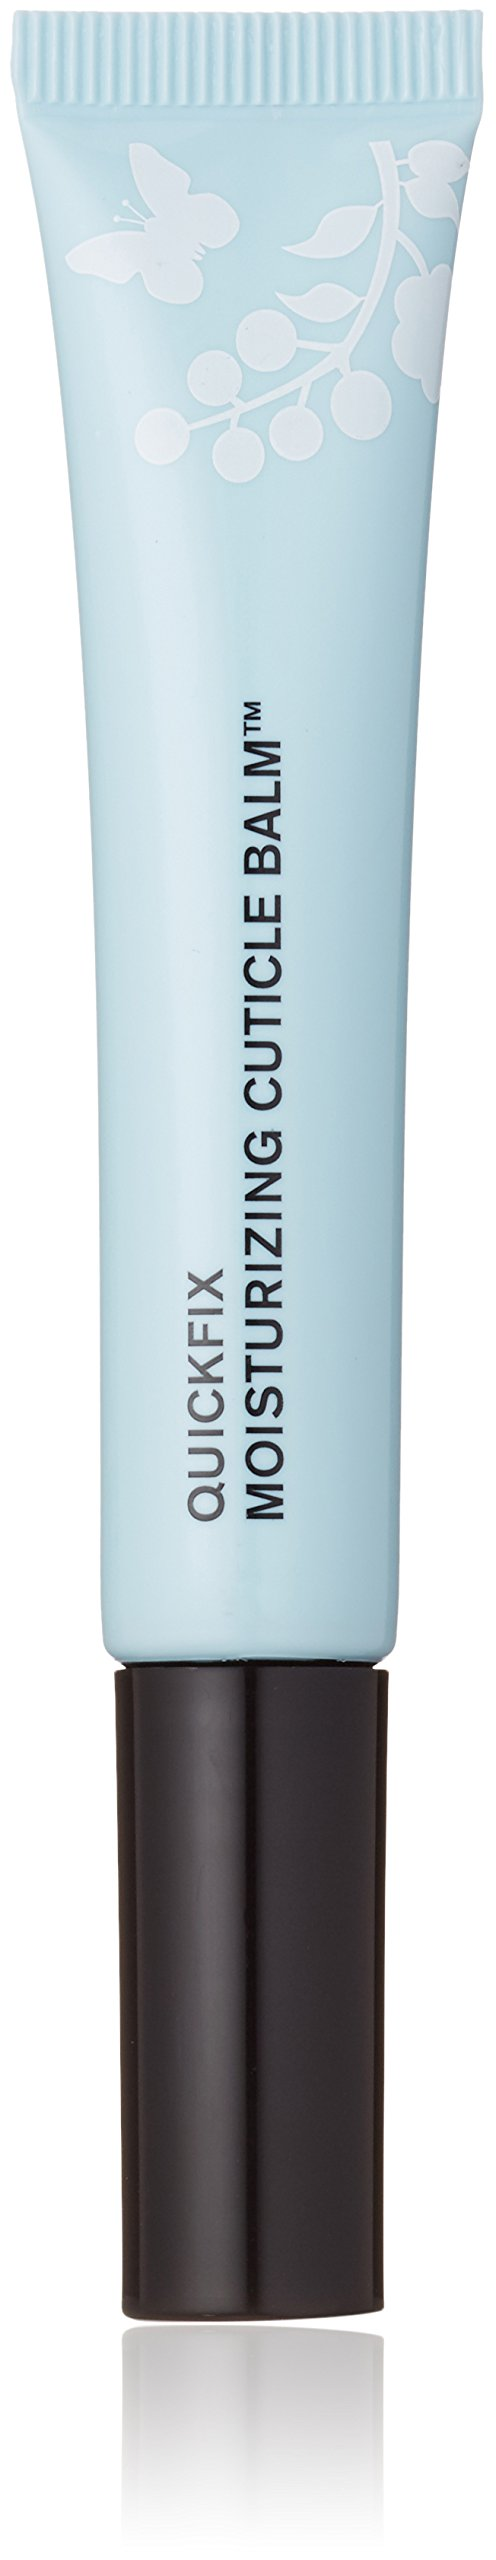 butter LONDON QuickFix Moisturizing Cuticle Balm, 0.33 oz.